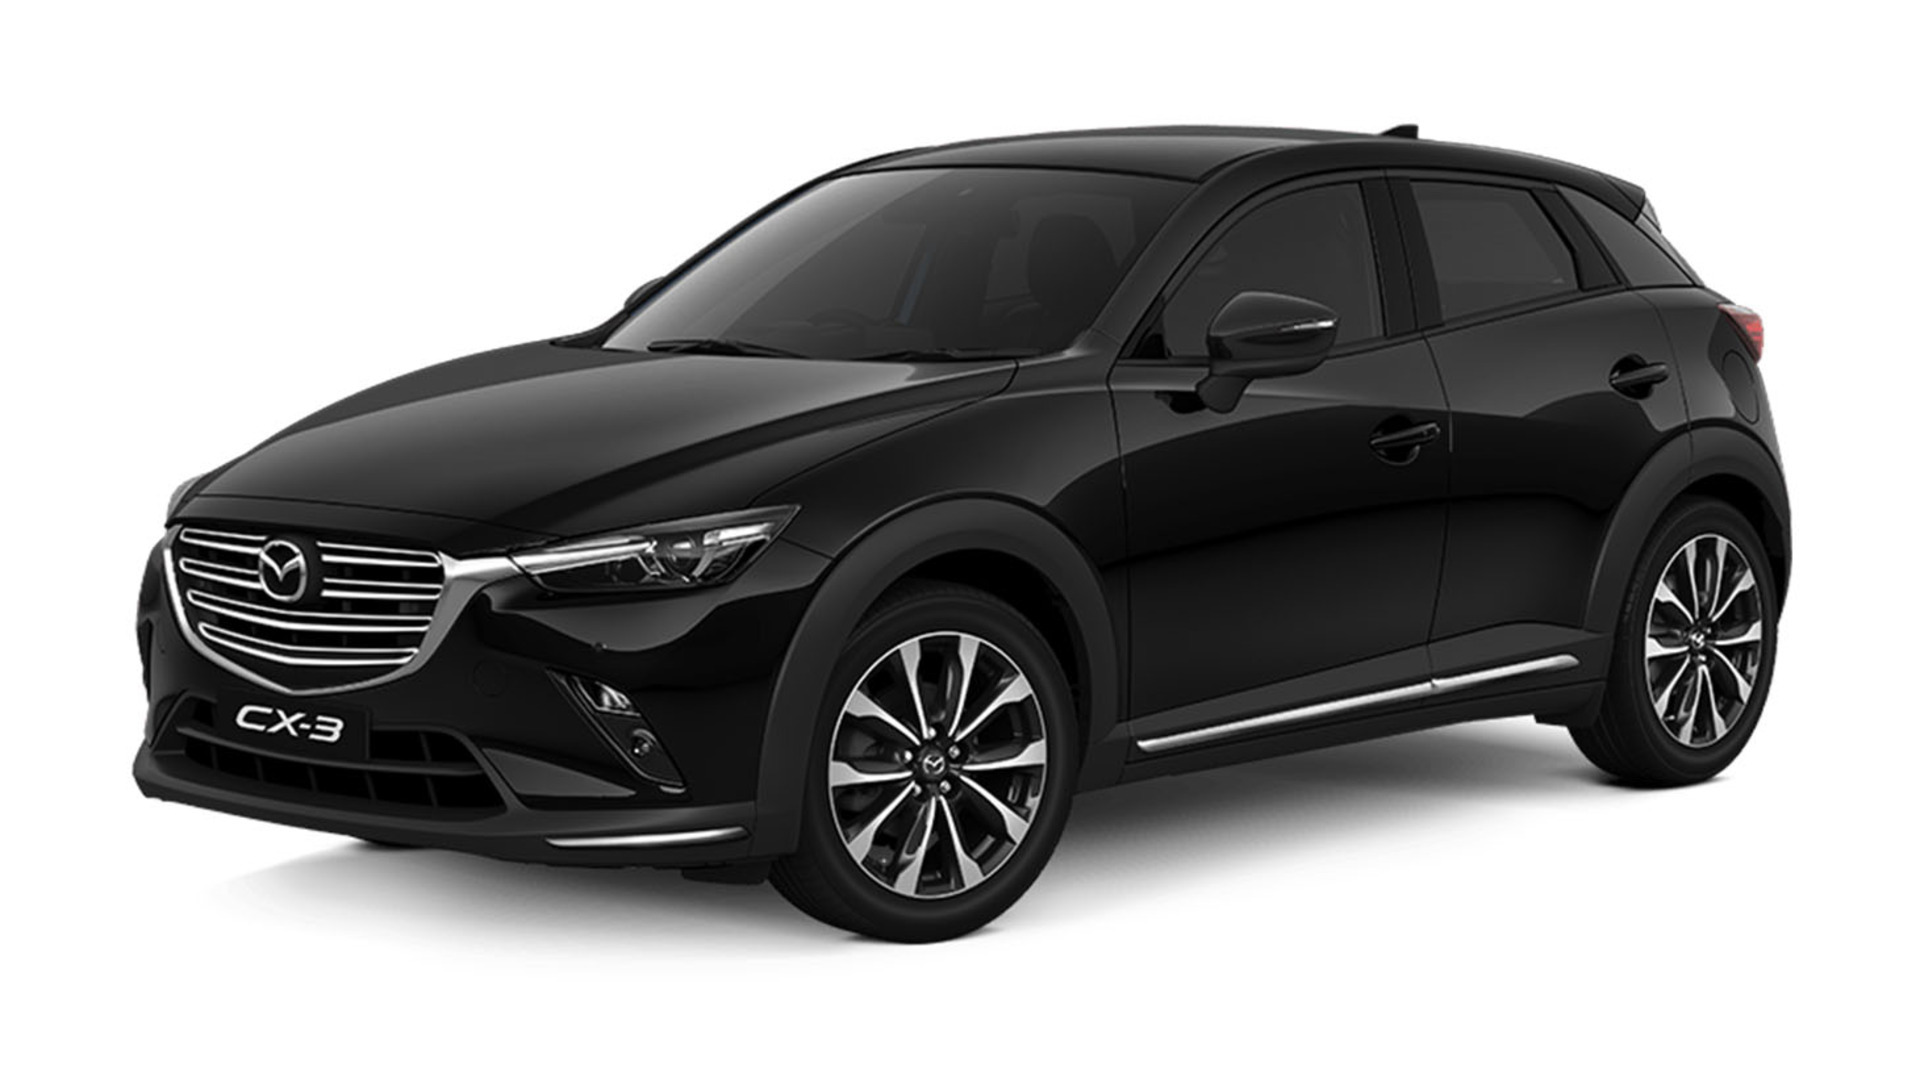 Mazda Cx 3 >> Mazda Cx 3 2 0 120 Hv Skyactiv G Premium Plus 6at Gc2 2019